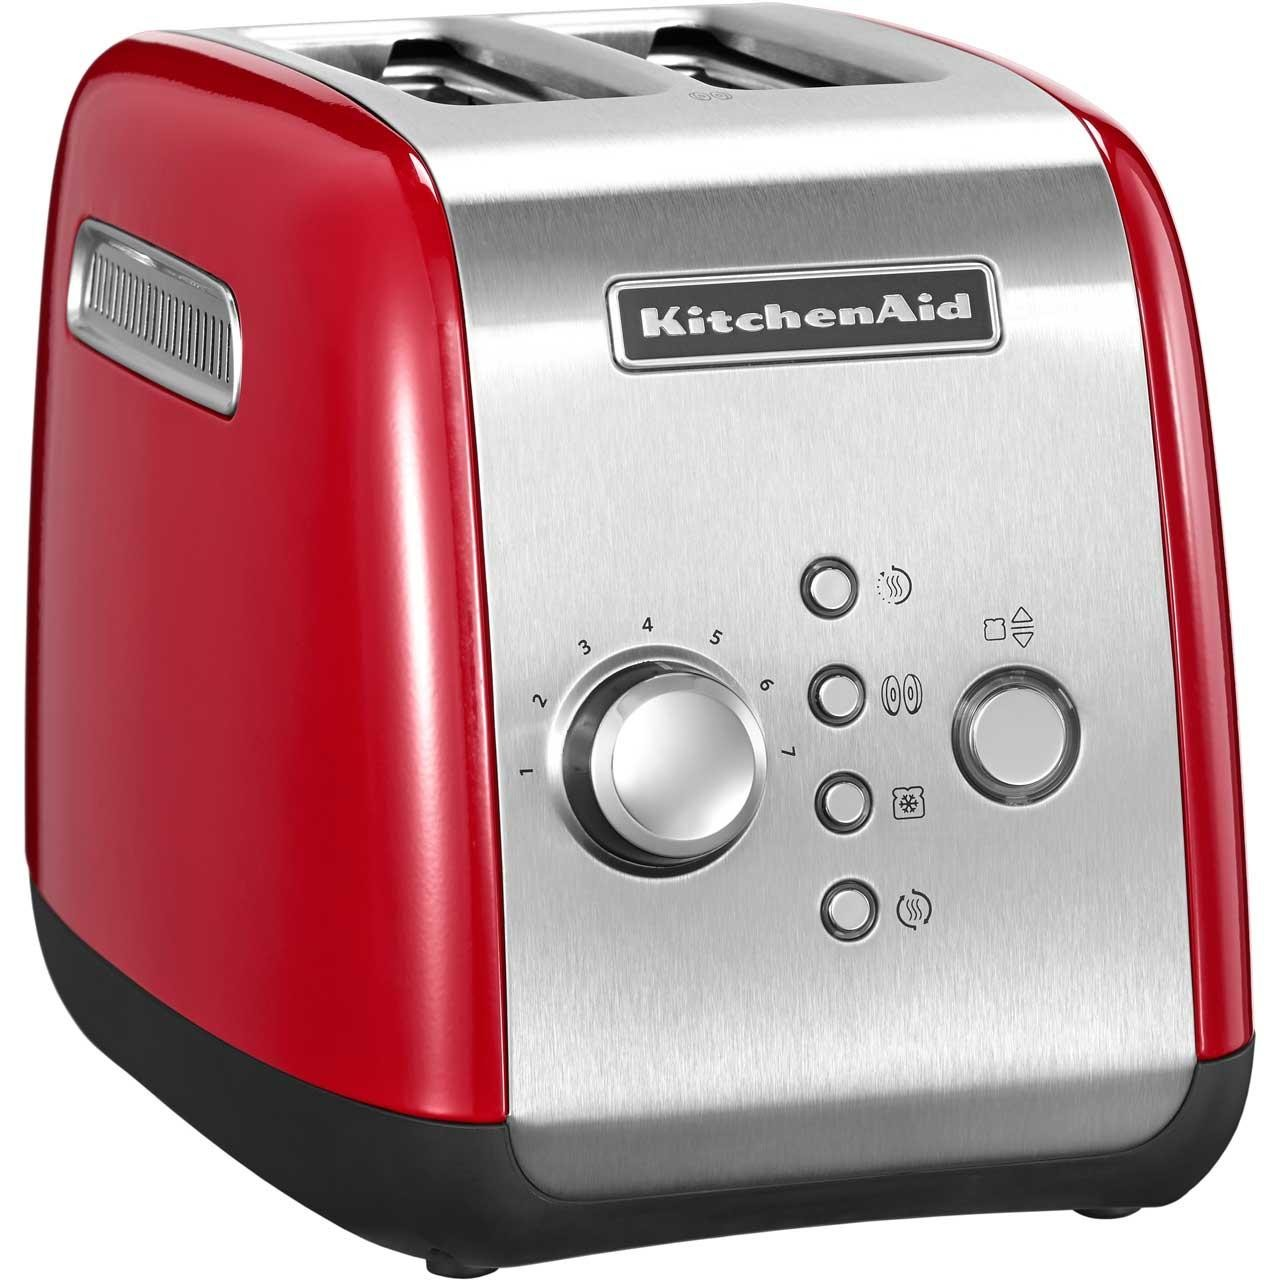 5kmt221ber_red_kitchenaid_toaster.jpg